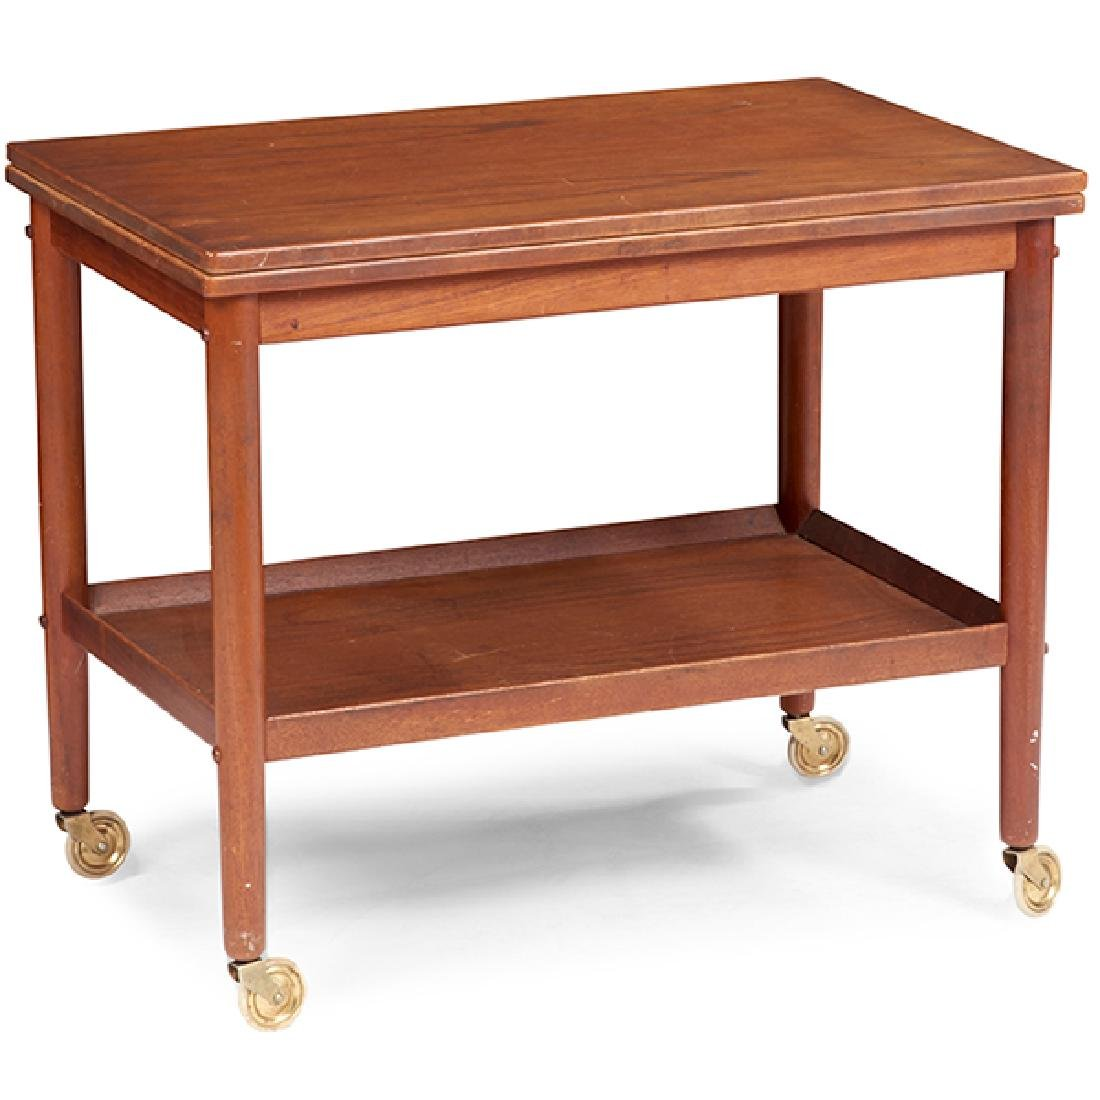 Grete Jalk (1920-2006) for France & Sons bar cart